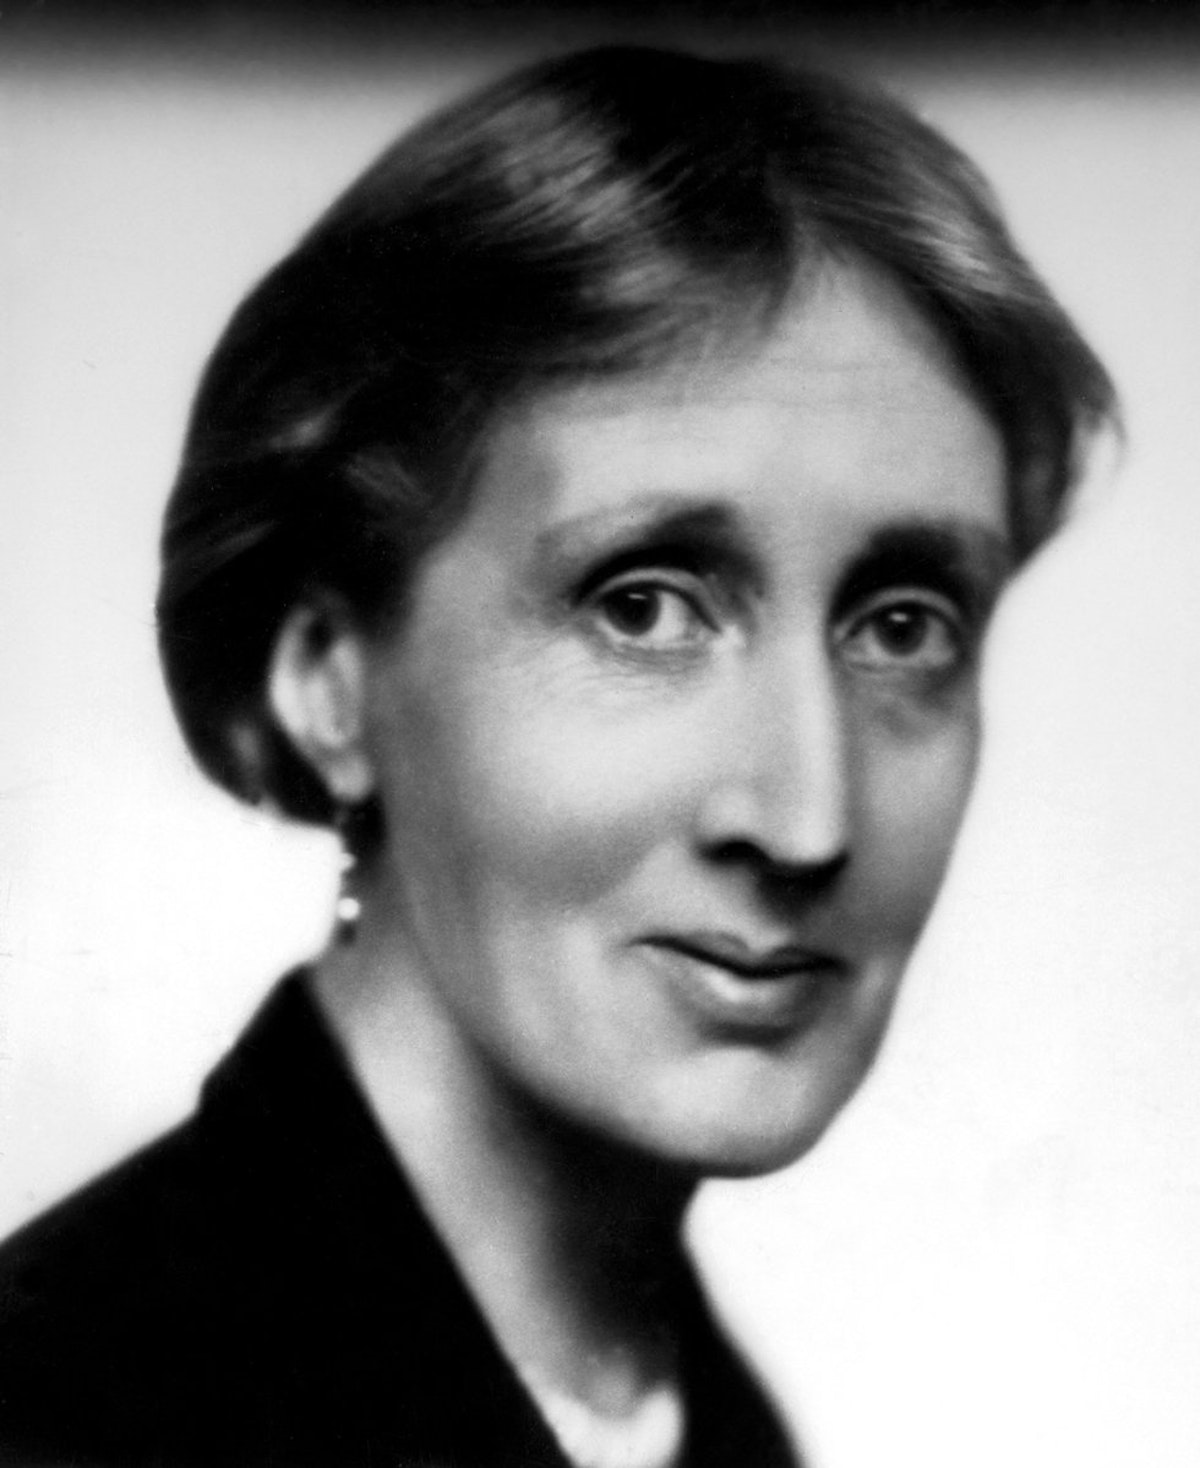 virginia woolf why should women Virginia woolf among the apostles  virginia woolf wonders why  it may be worthwhile to suggest that future philosophical analyses of virginia woolf should.